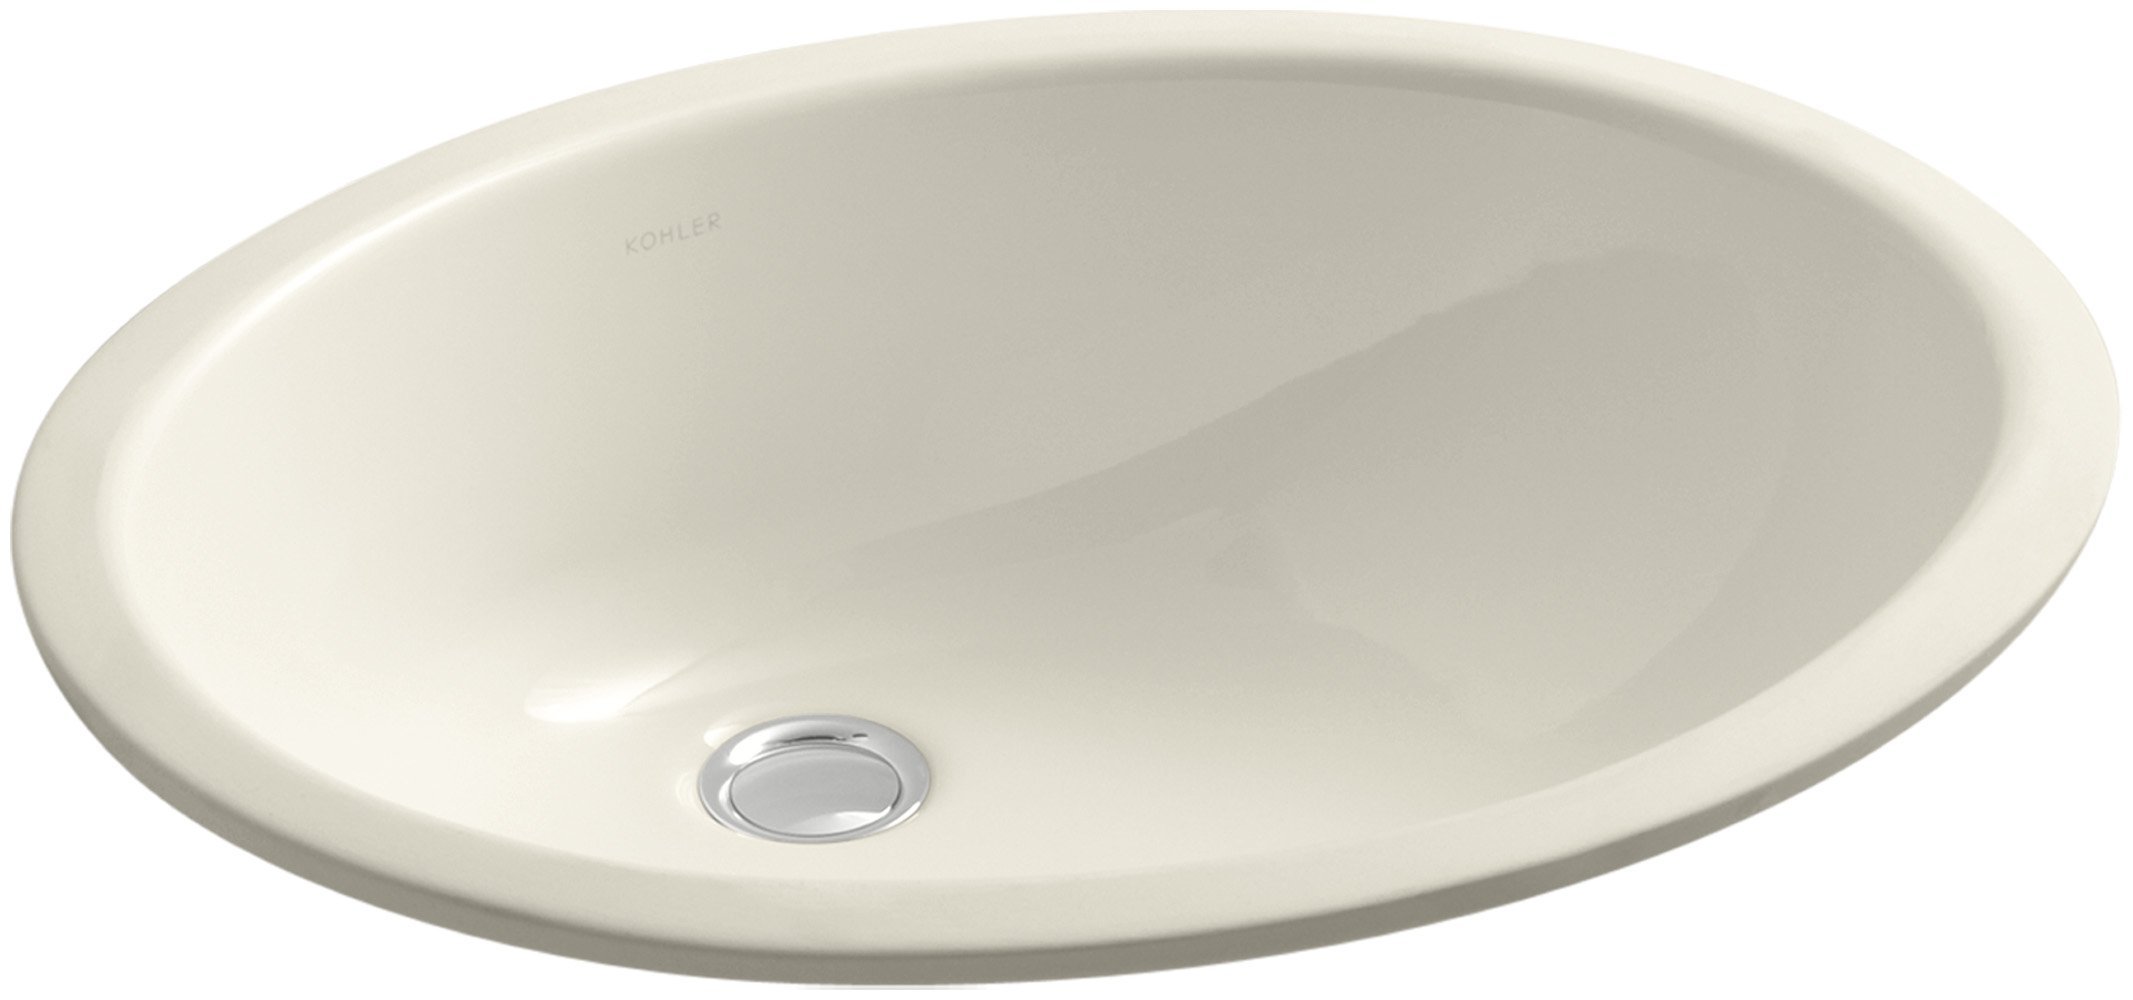 KOHLER K-2210-47 Caxton Undercounter Bathroom Sink, Almond by Kohler